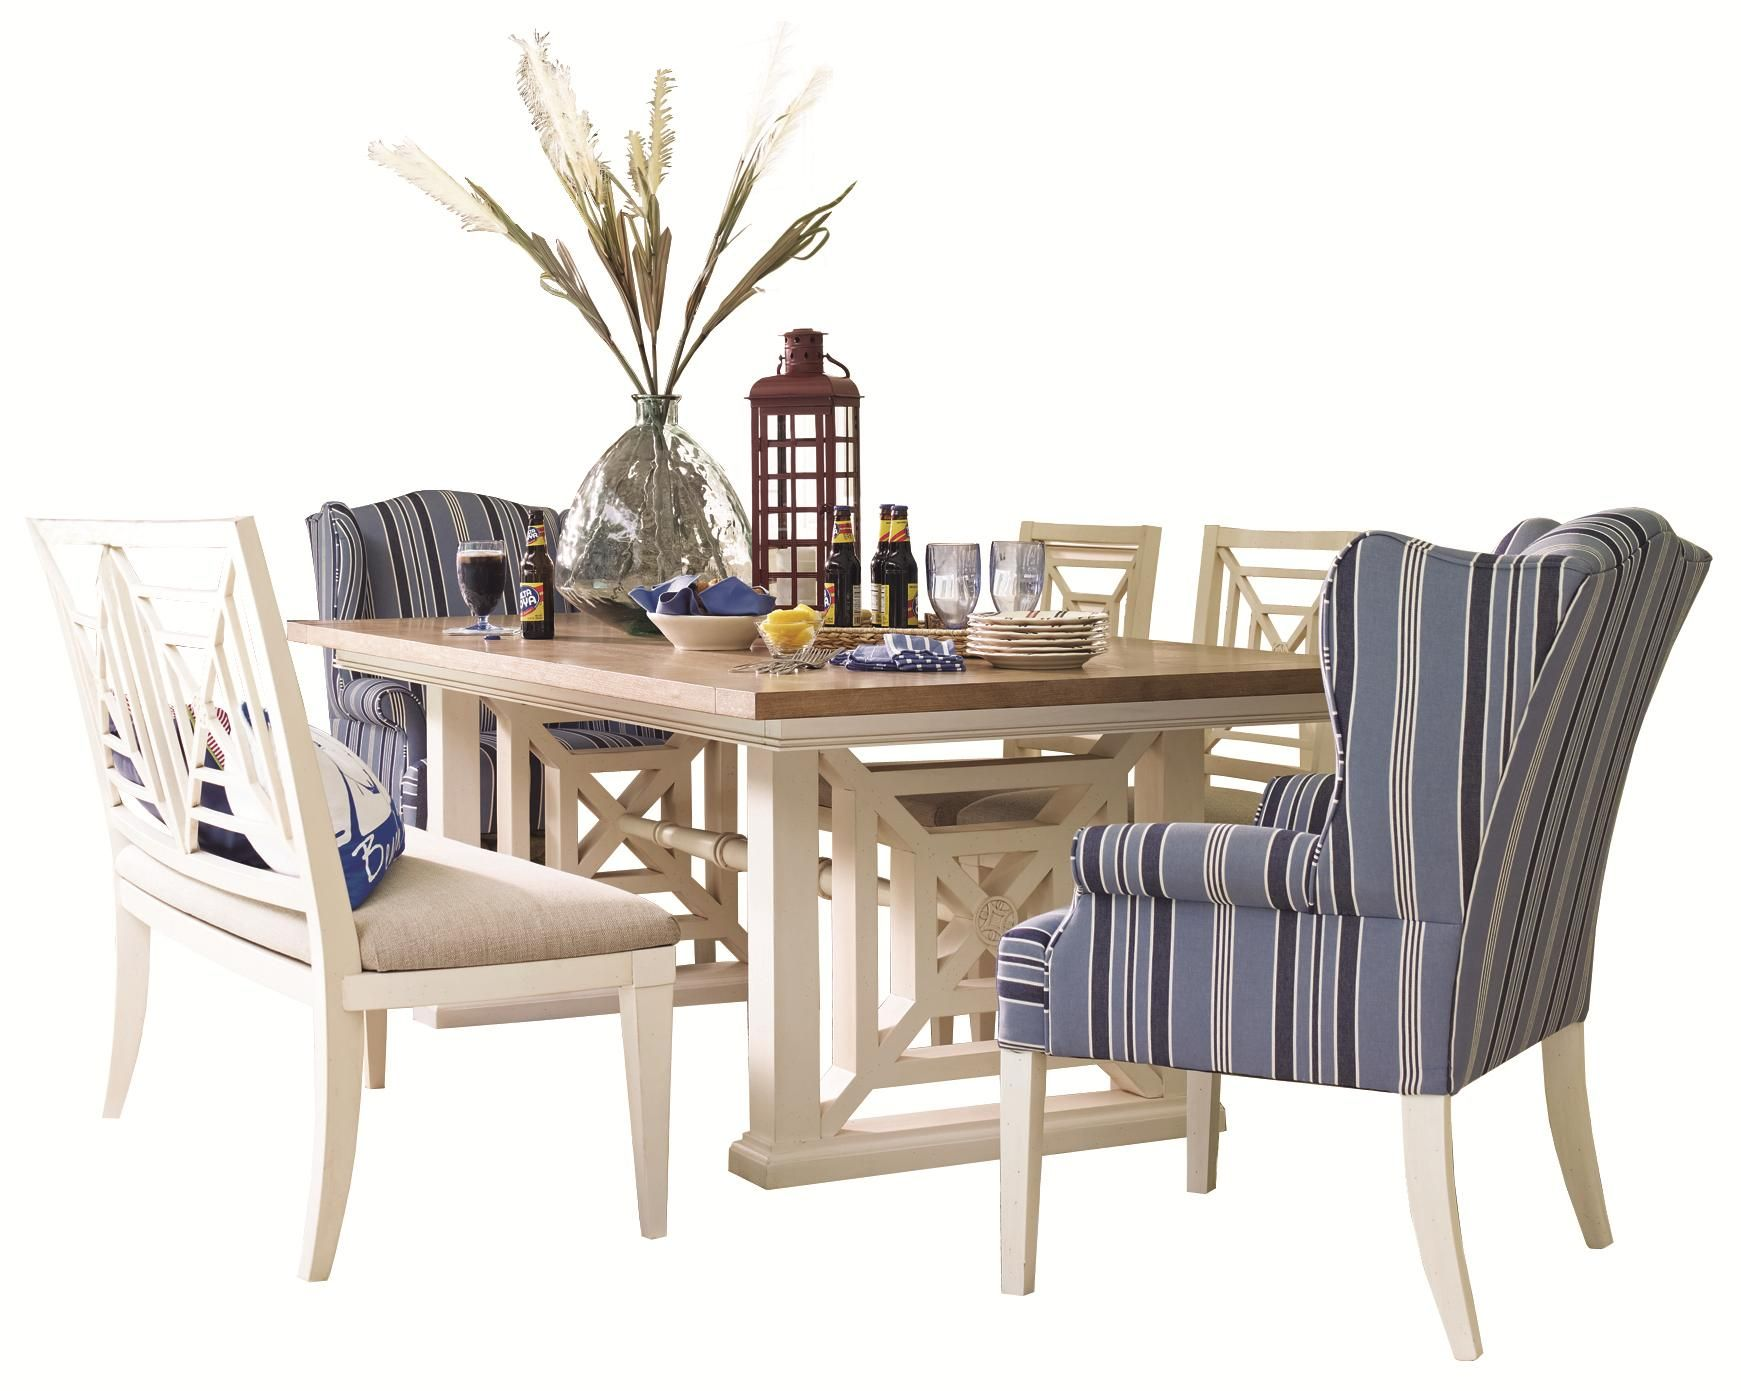 Wateru0027s Edge Trestle Dining Table And Wing Chair Set By HGTV Home Furniture  Collection